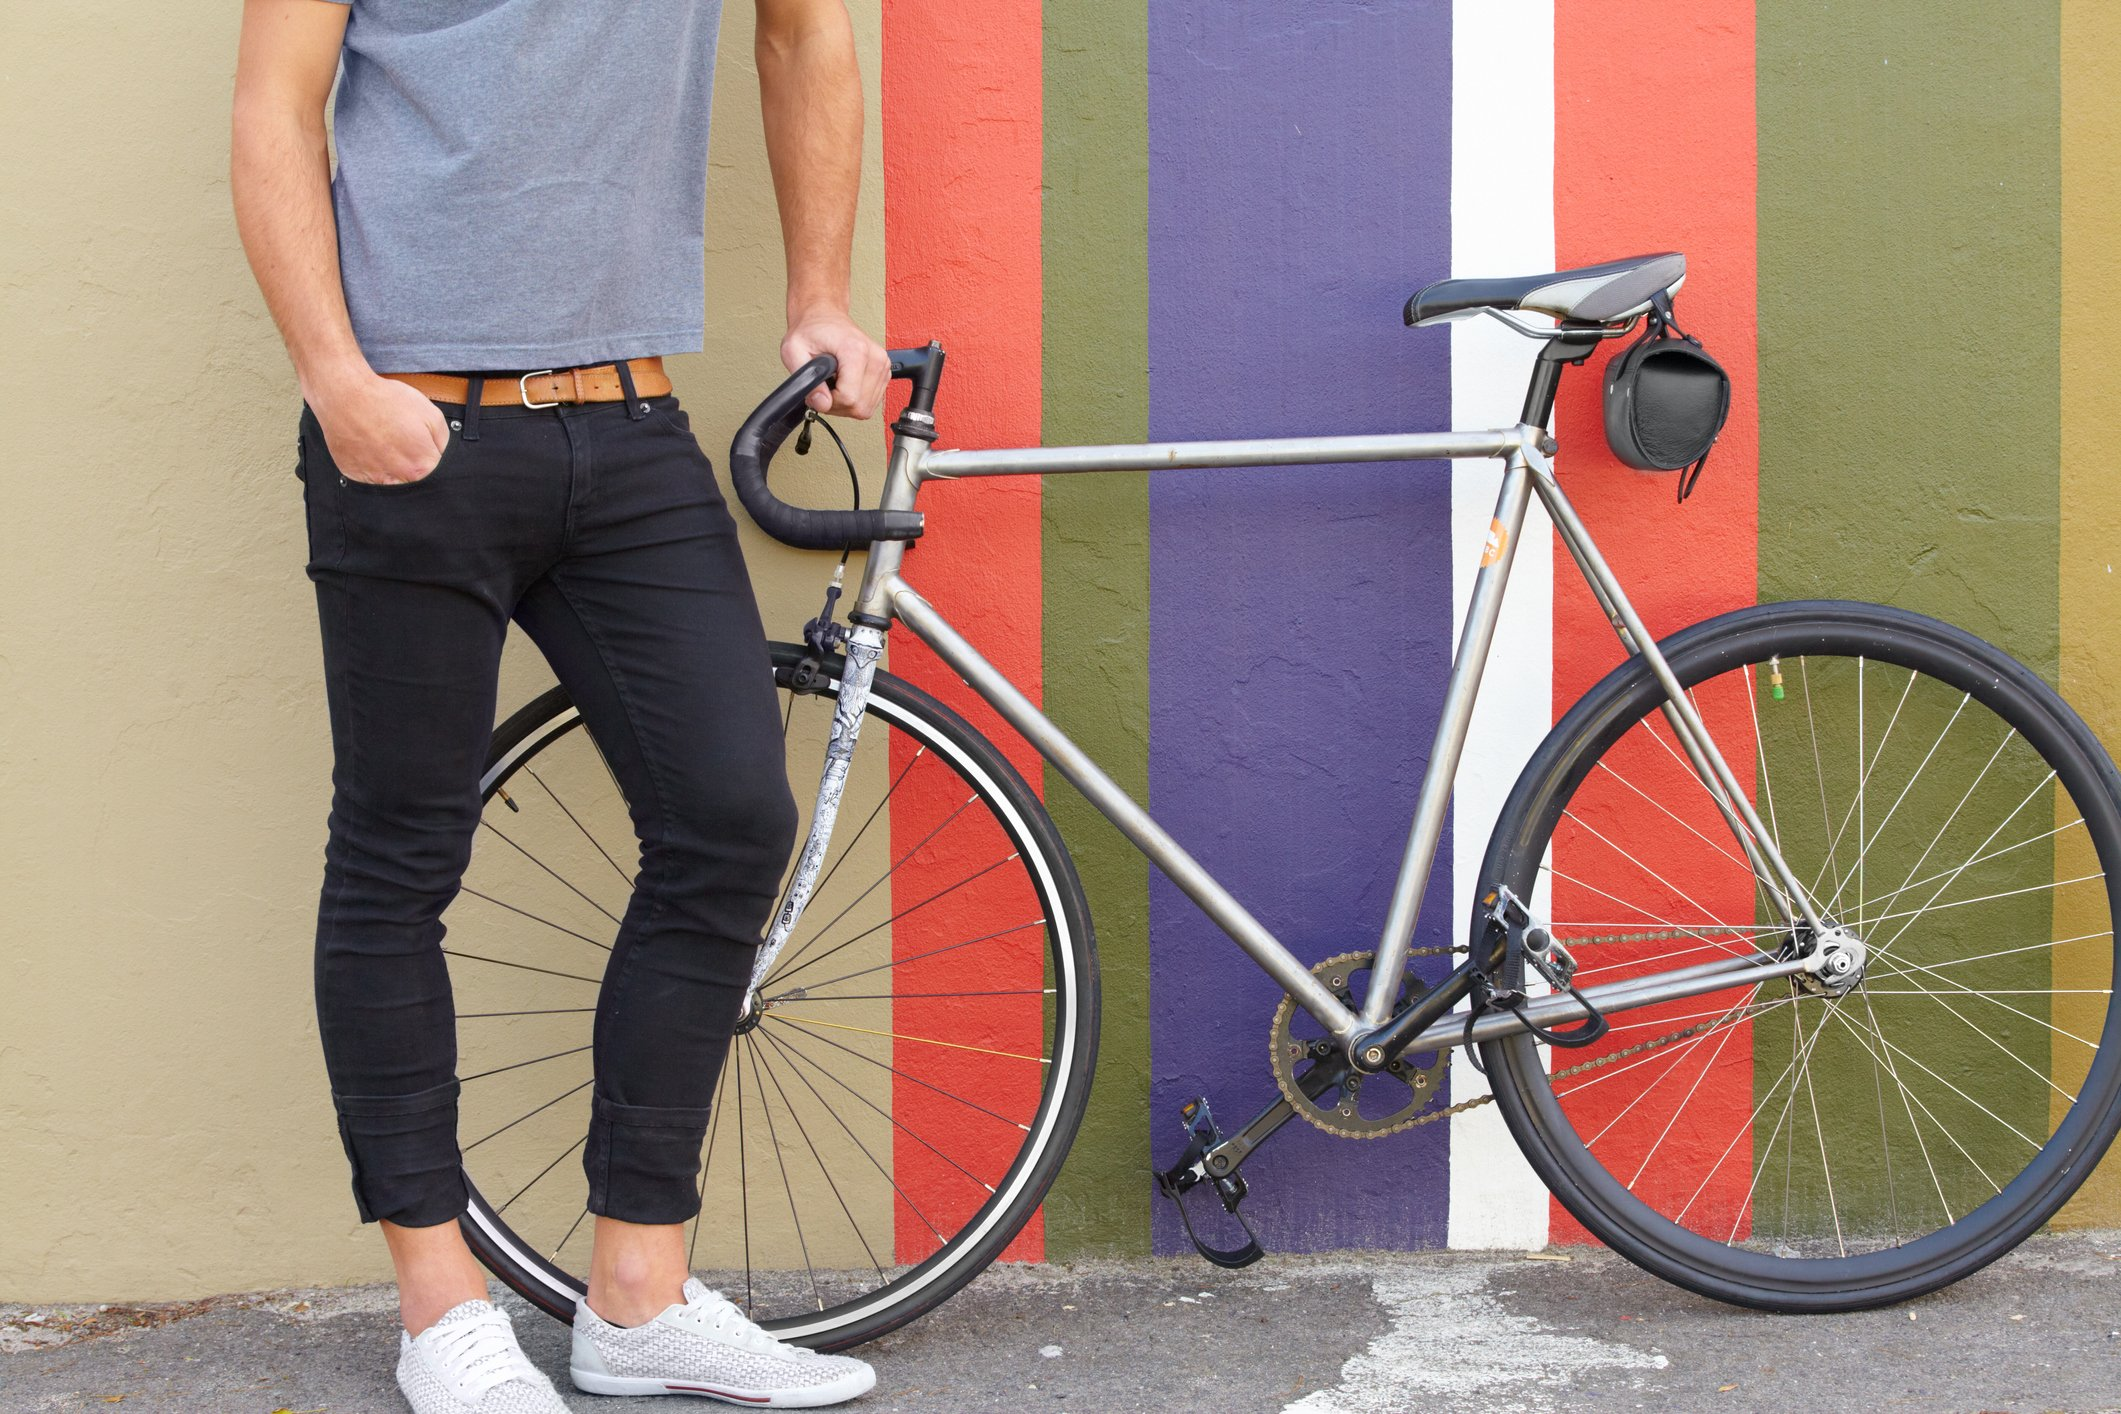 Cropped shot of a stylishly dressed young man standing next to a bicycle against a colourful background